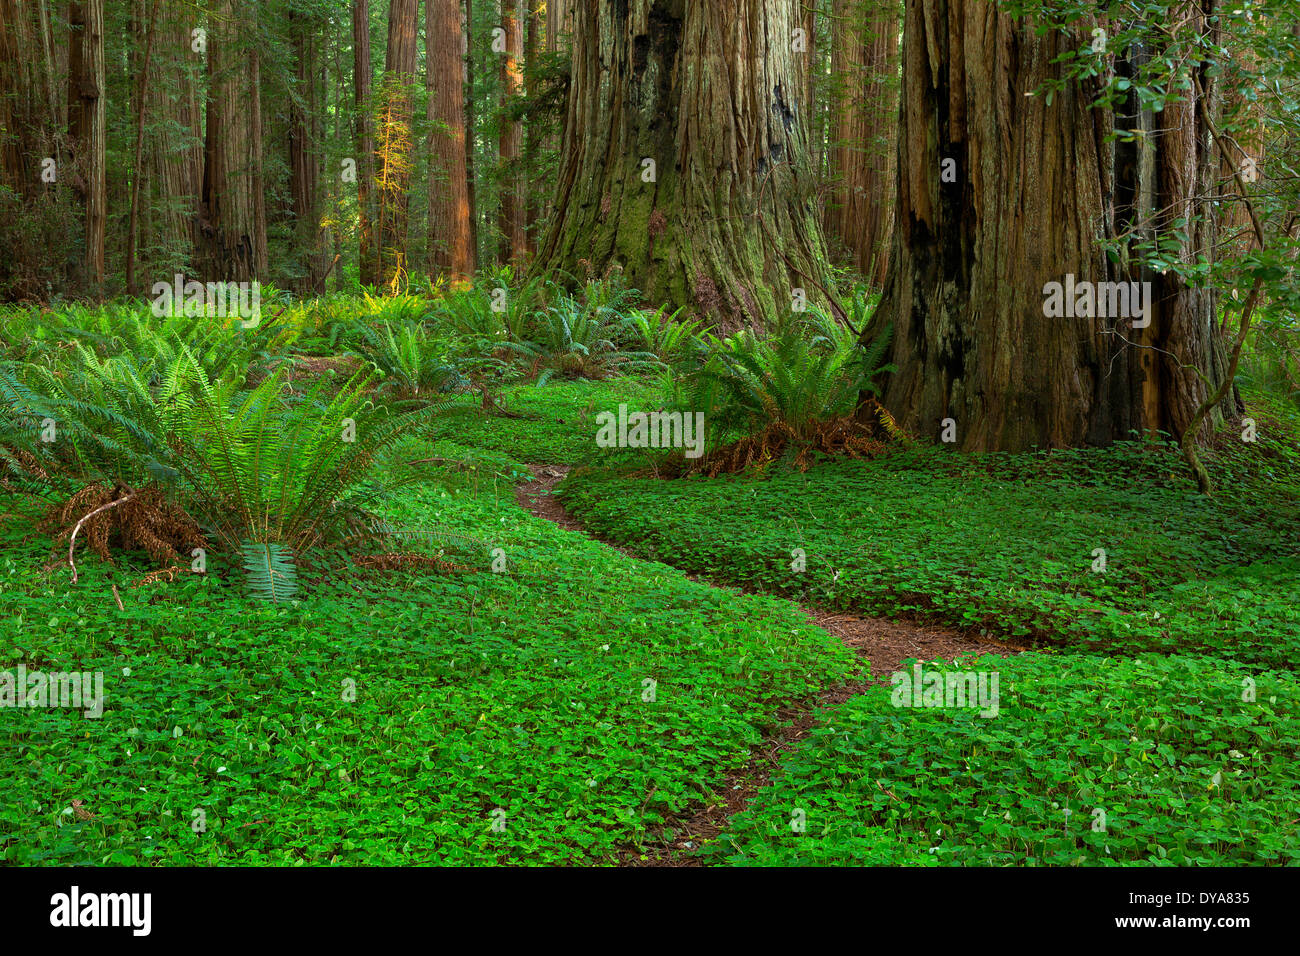 CA California USA America United States Redwood National Park Redwoods Redwood forest Sequoia sempervirens forest Stock Photo